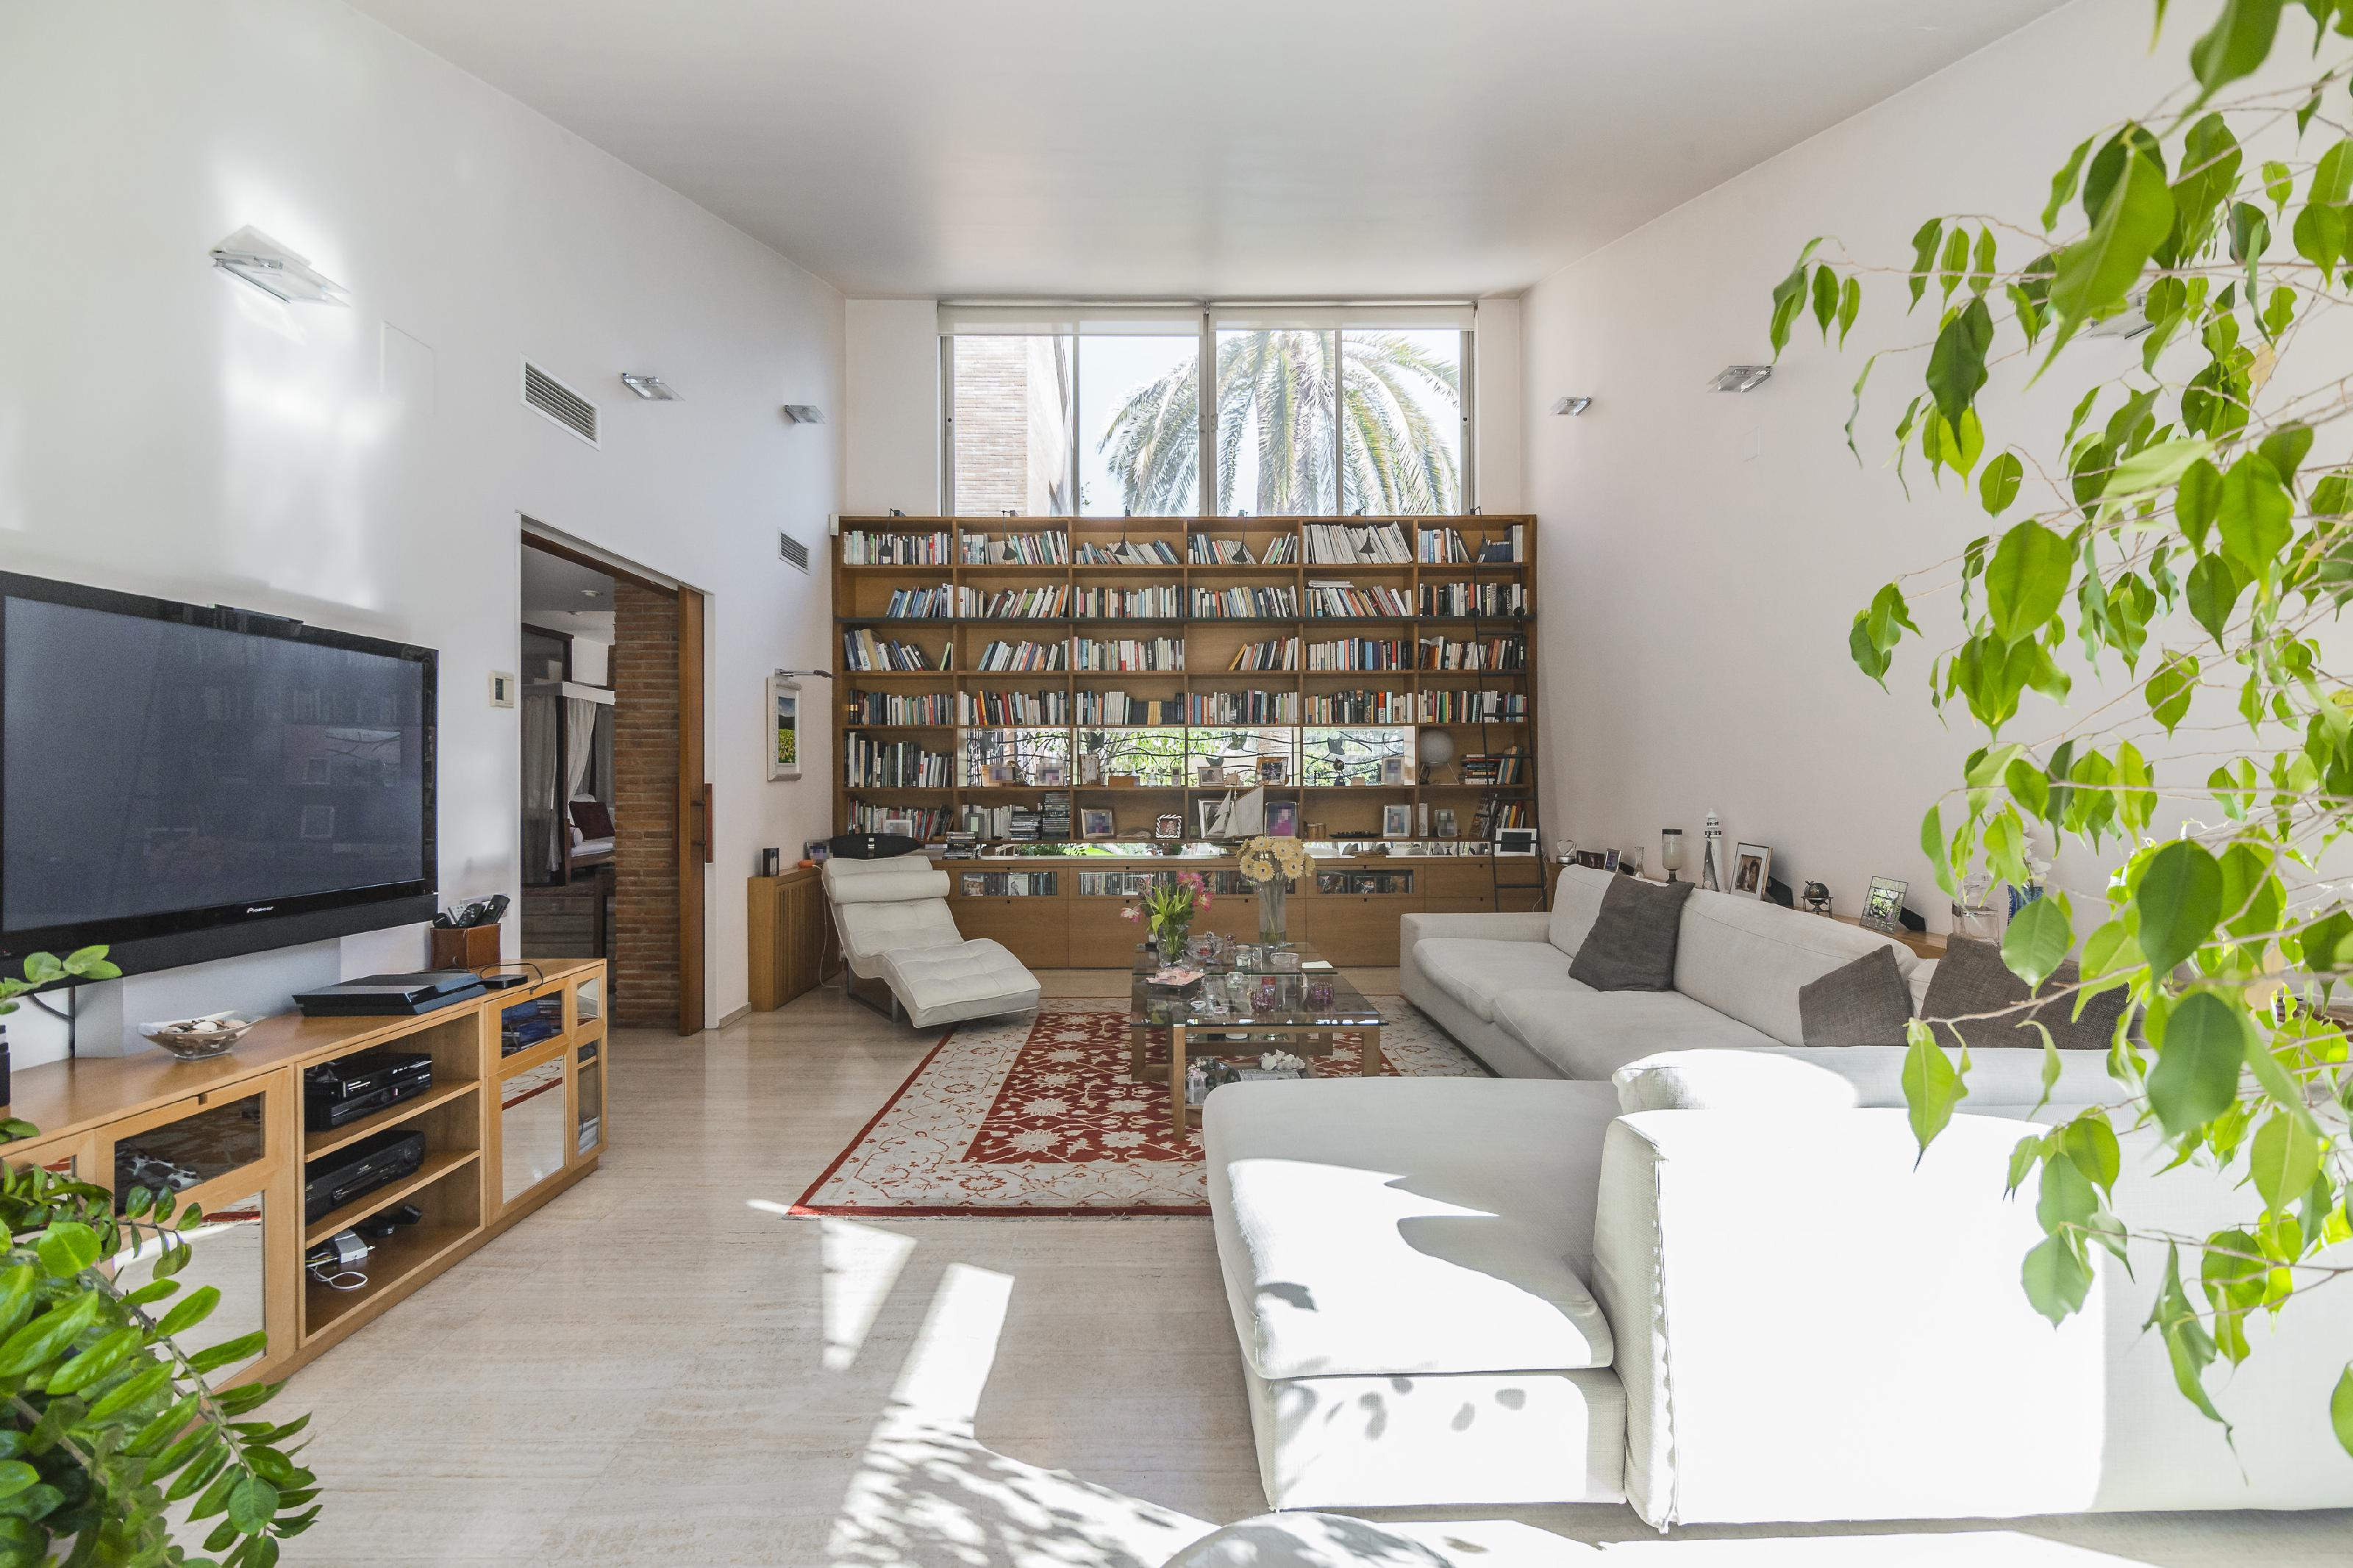 121070 Secluded House for sale in Les Corts, Pedralbes 9